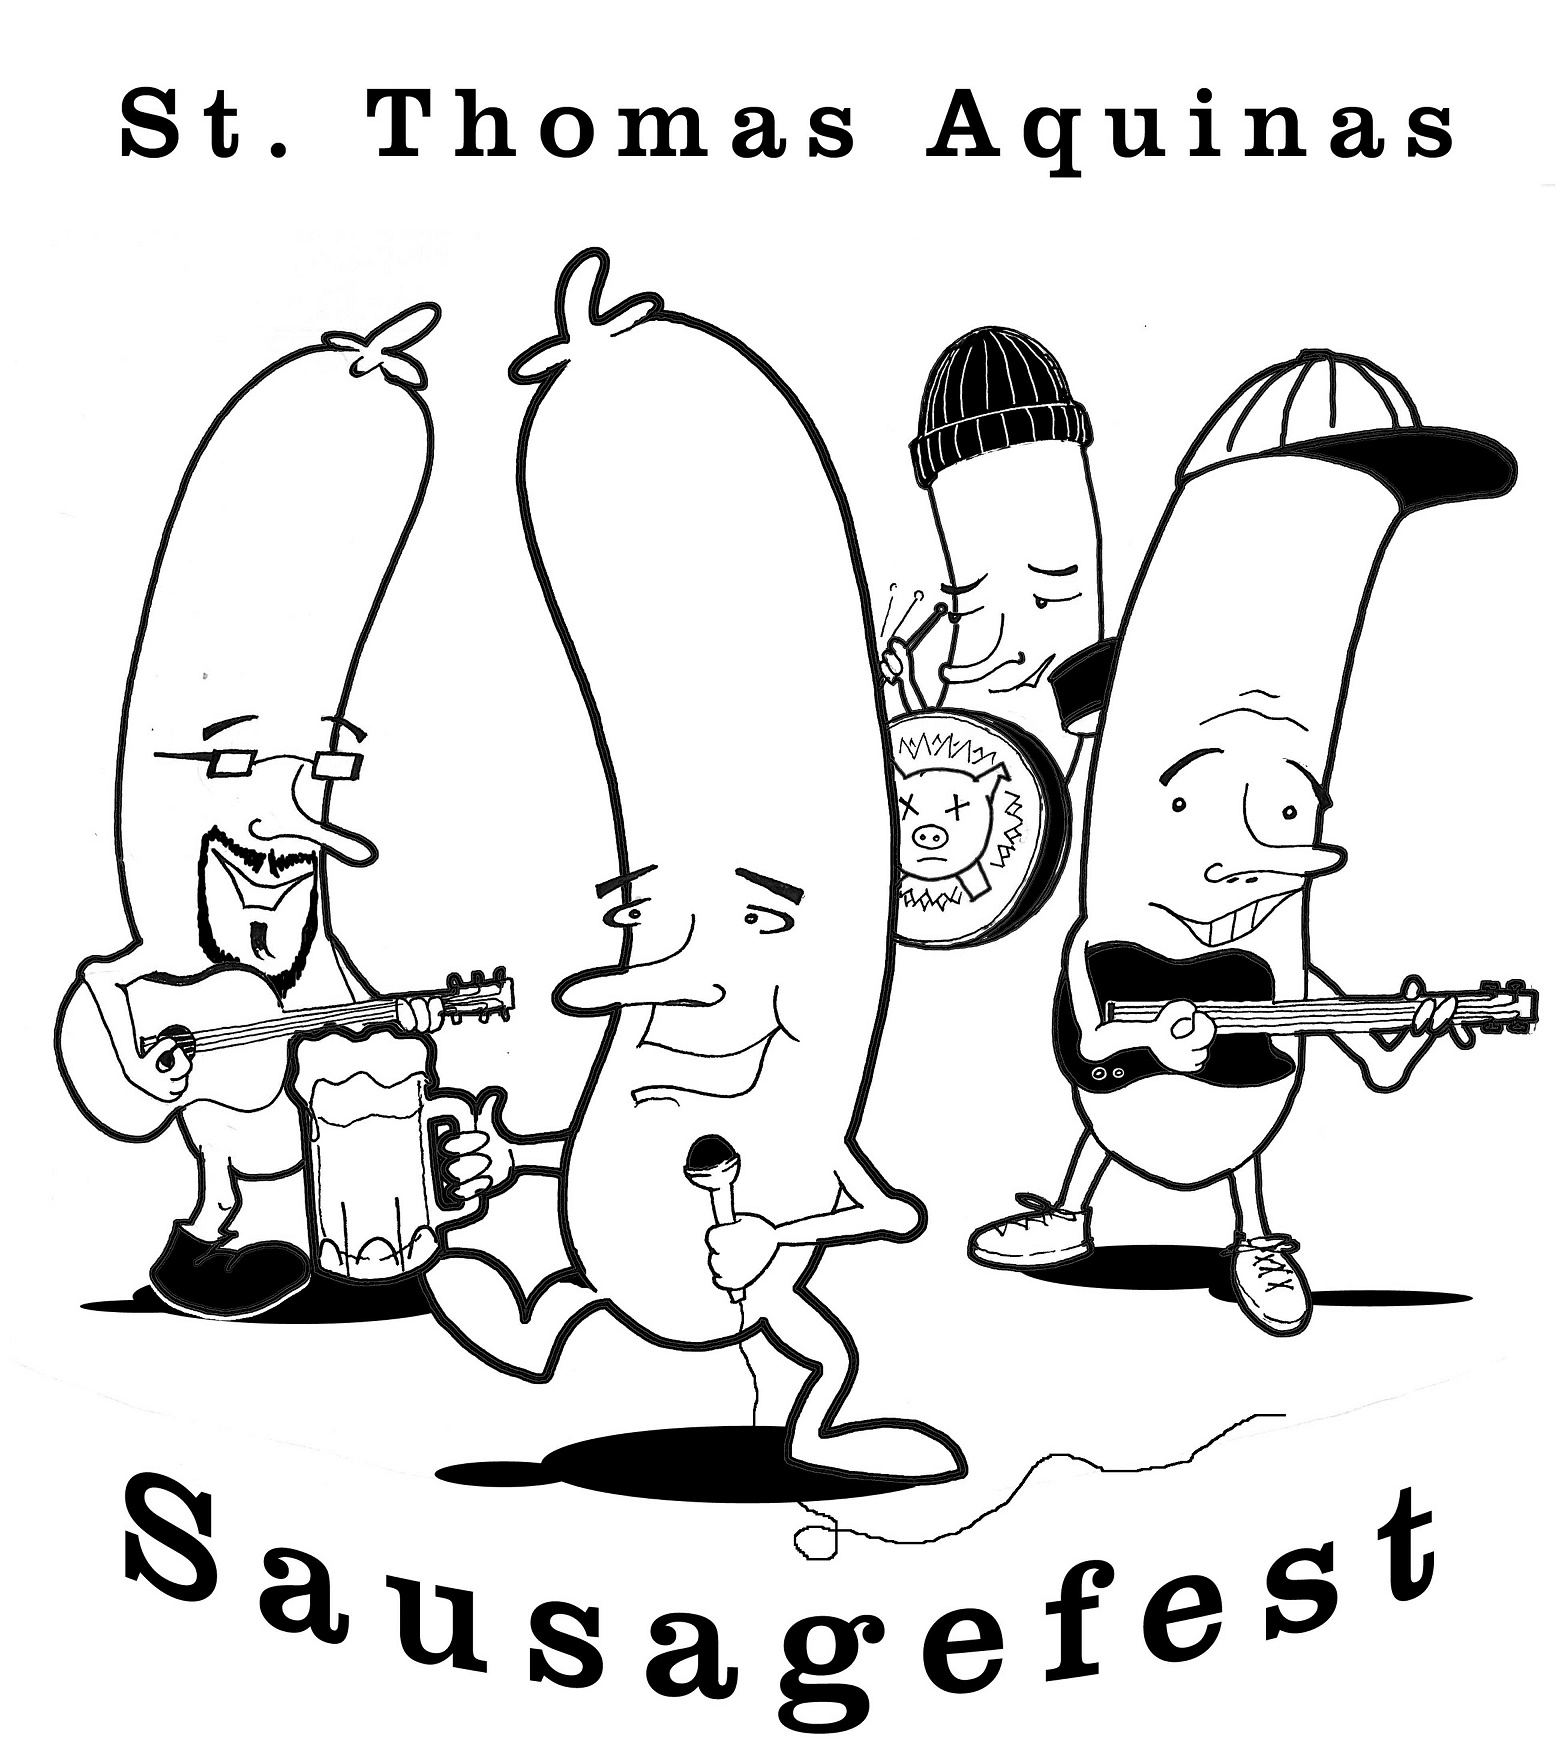 SausageFest 2019 Volunteer SignUp